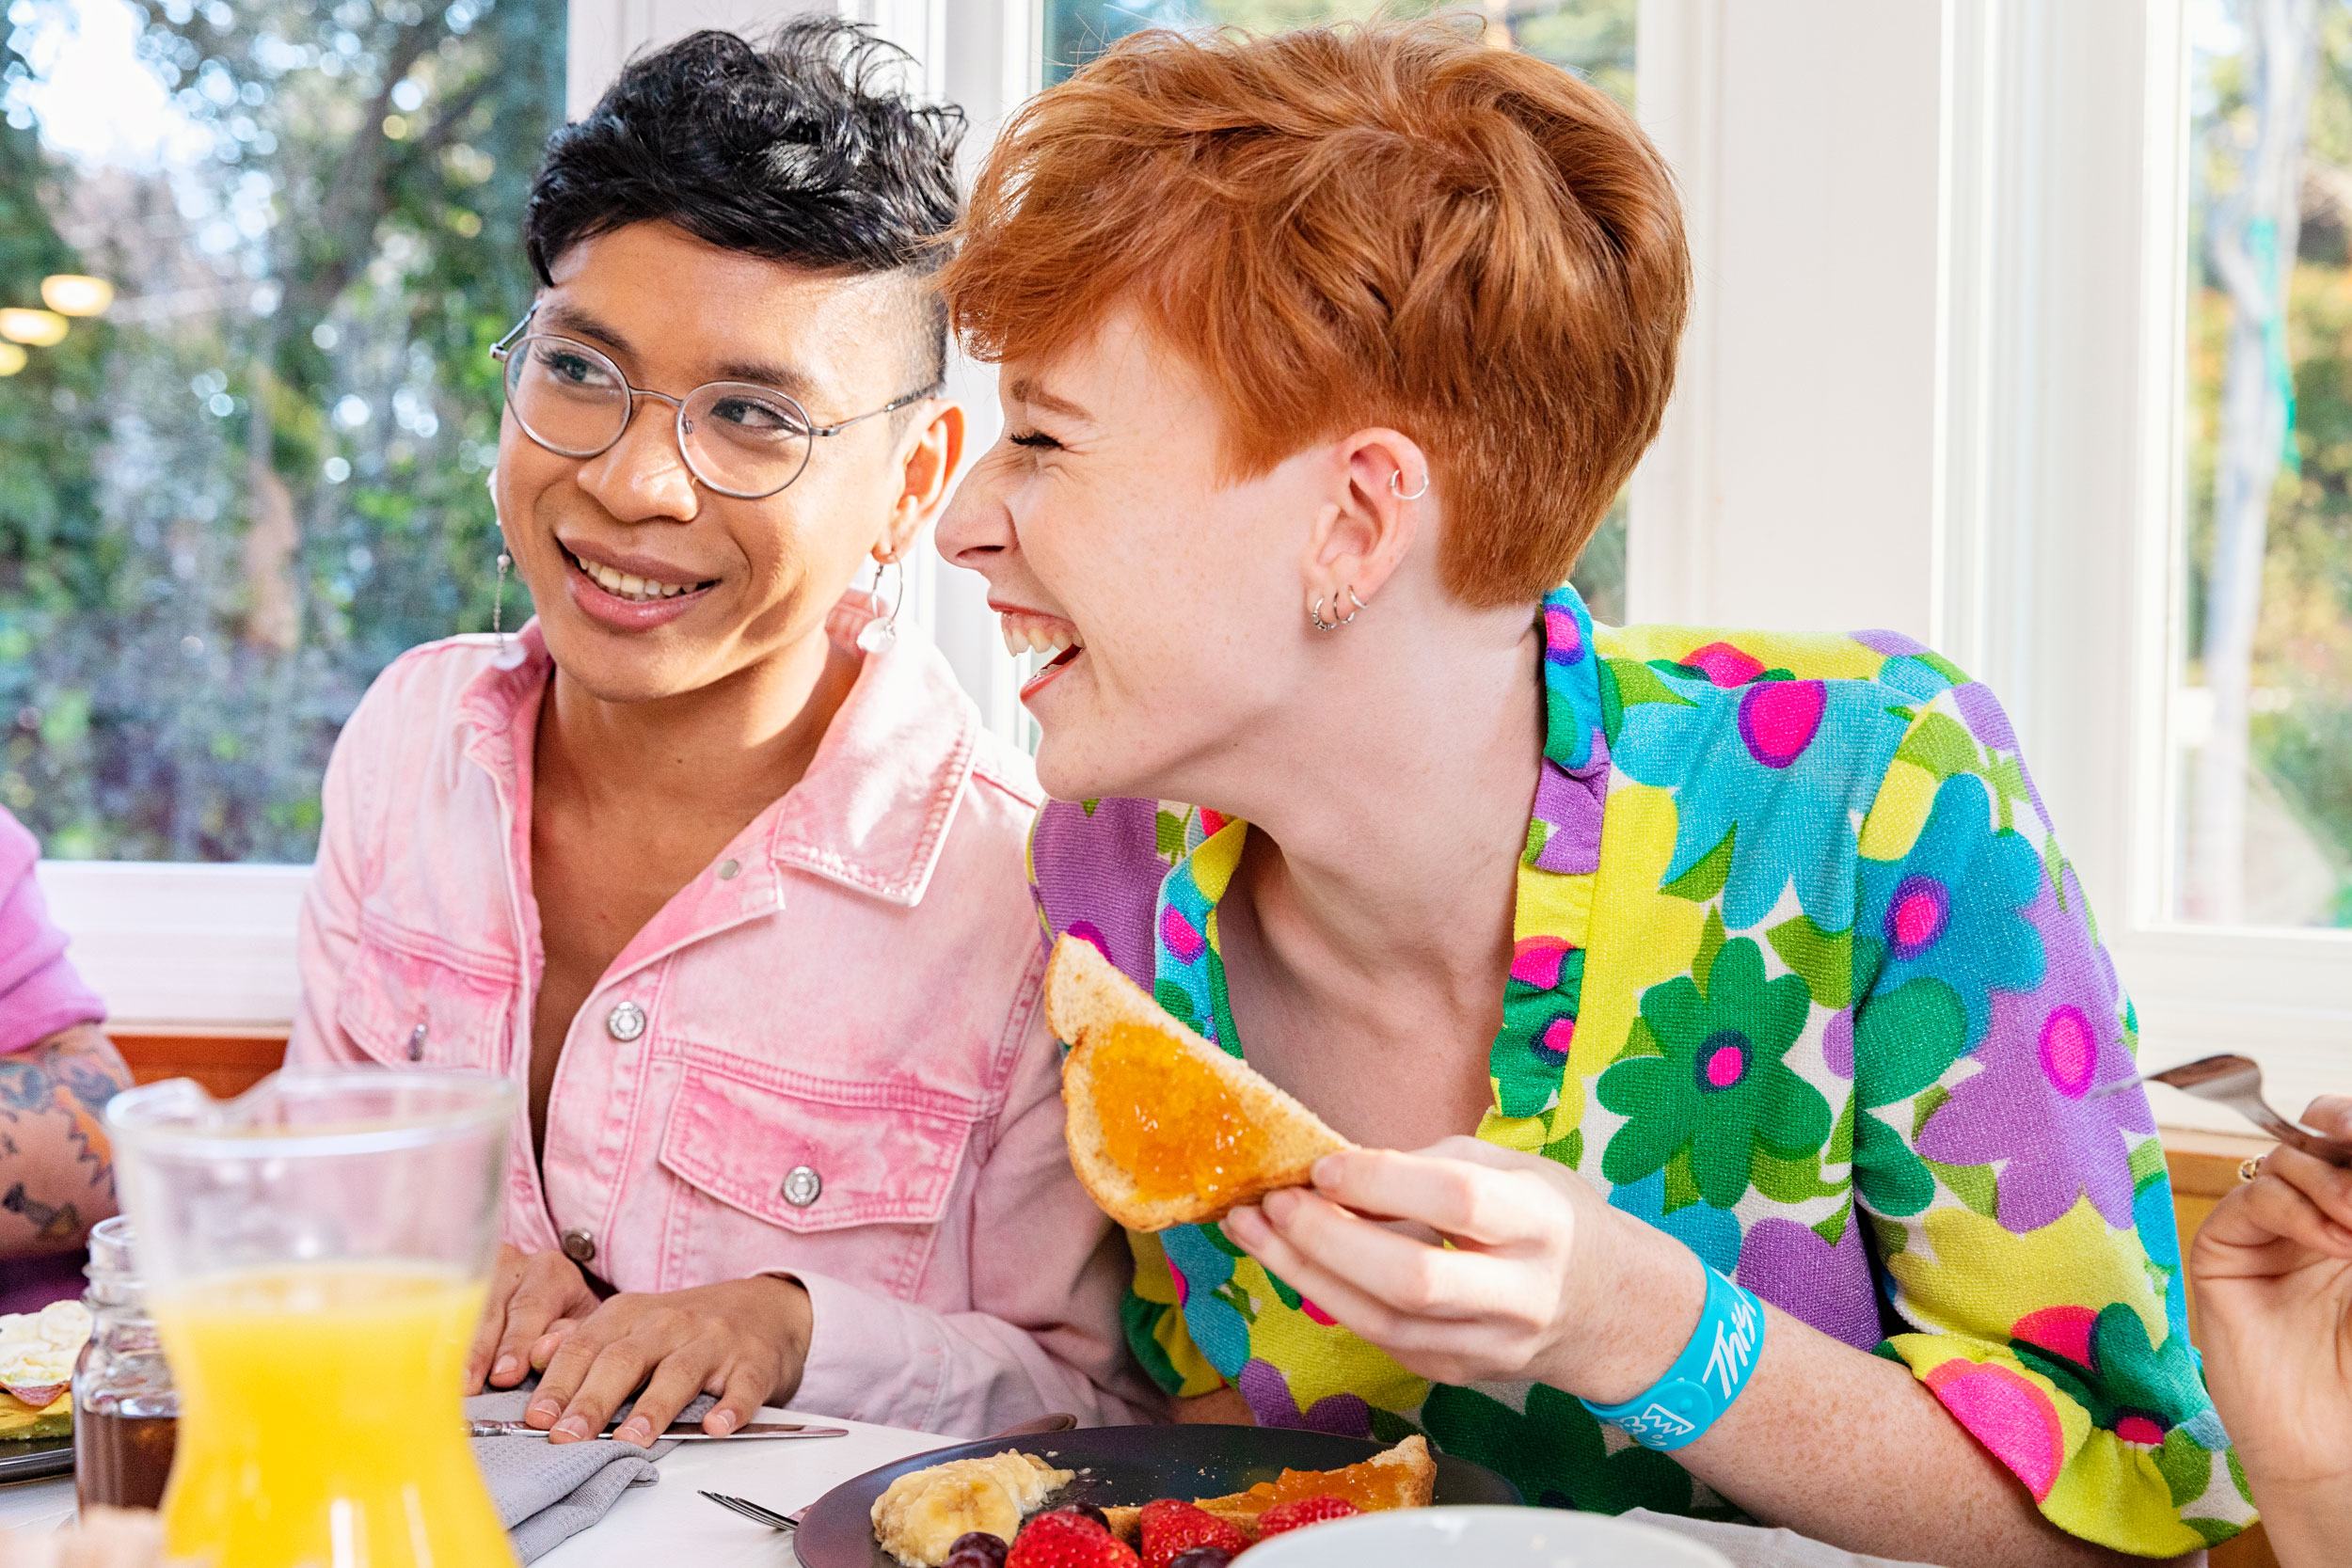 LGBTQ youth laughing at the kitchen table - Kim Genevieve Los Angeles Lifestyle Photographer